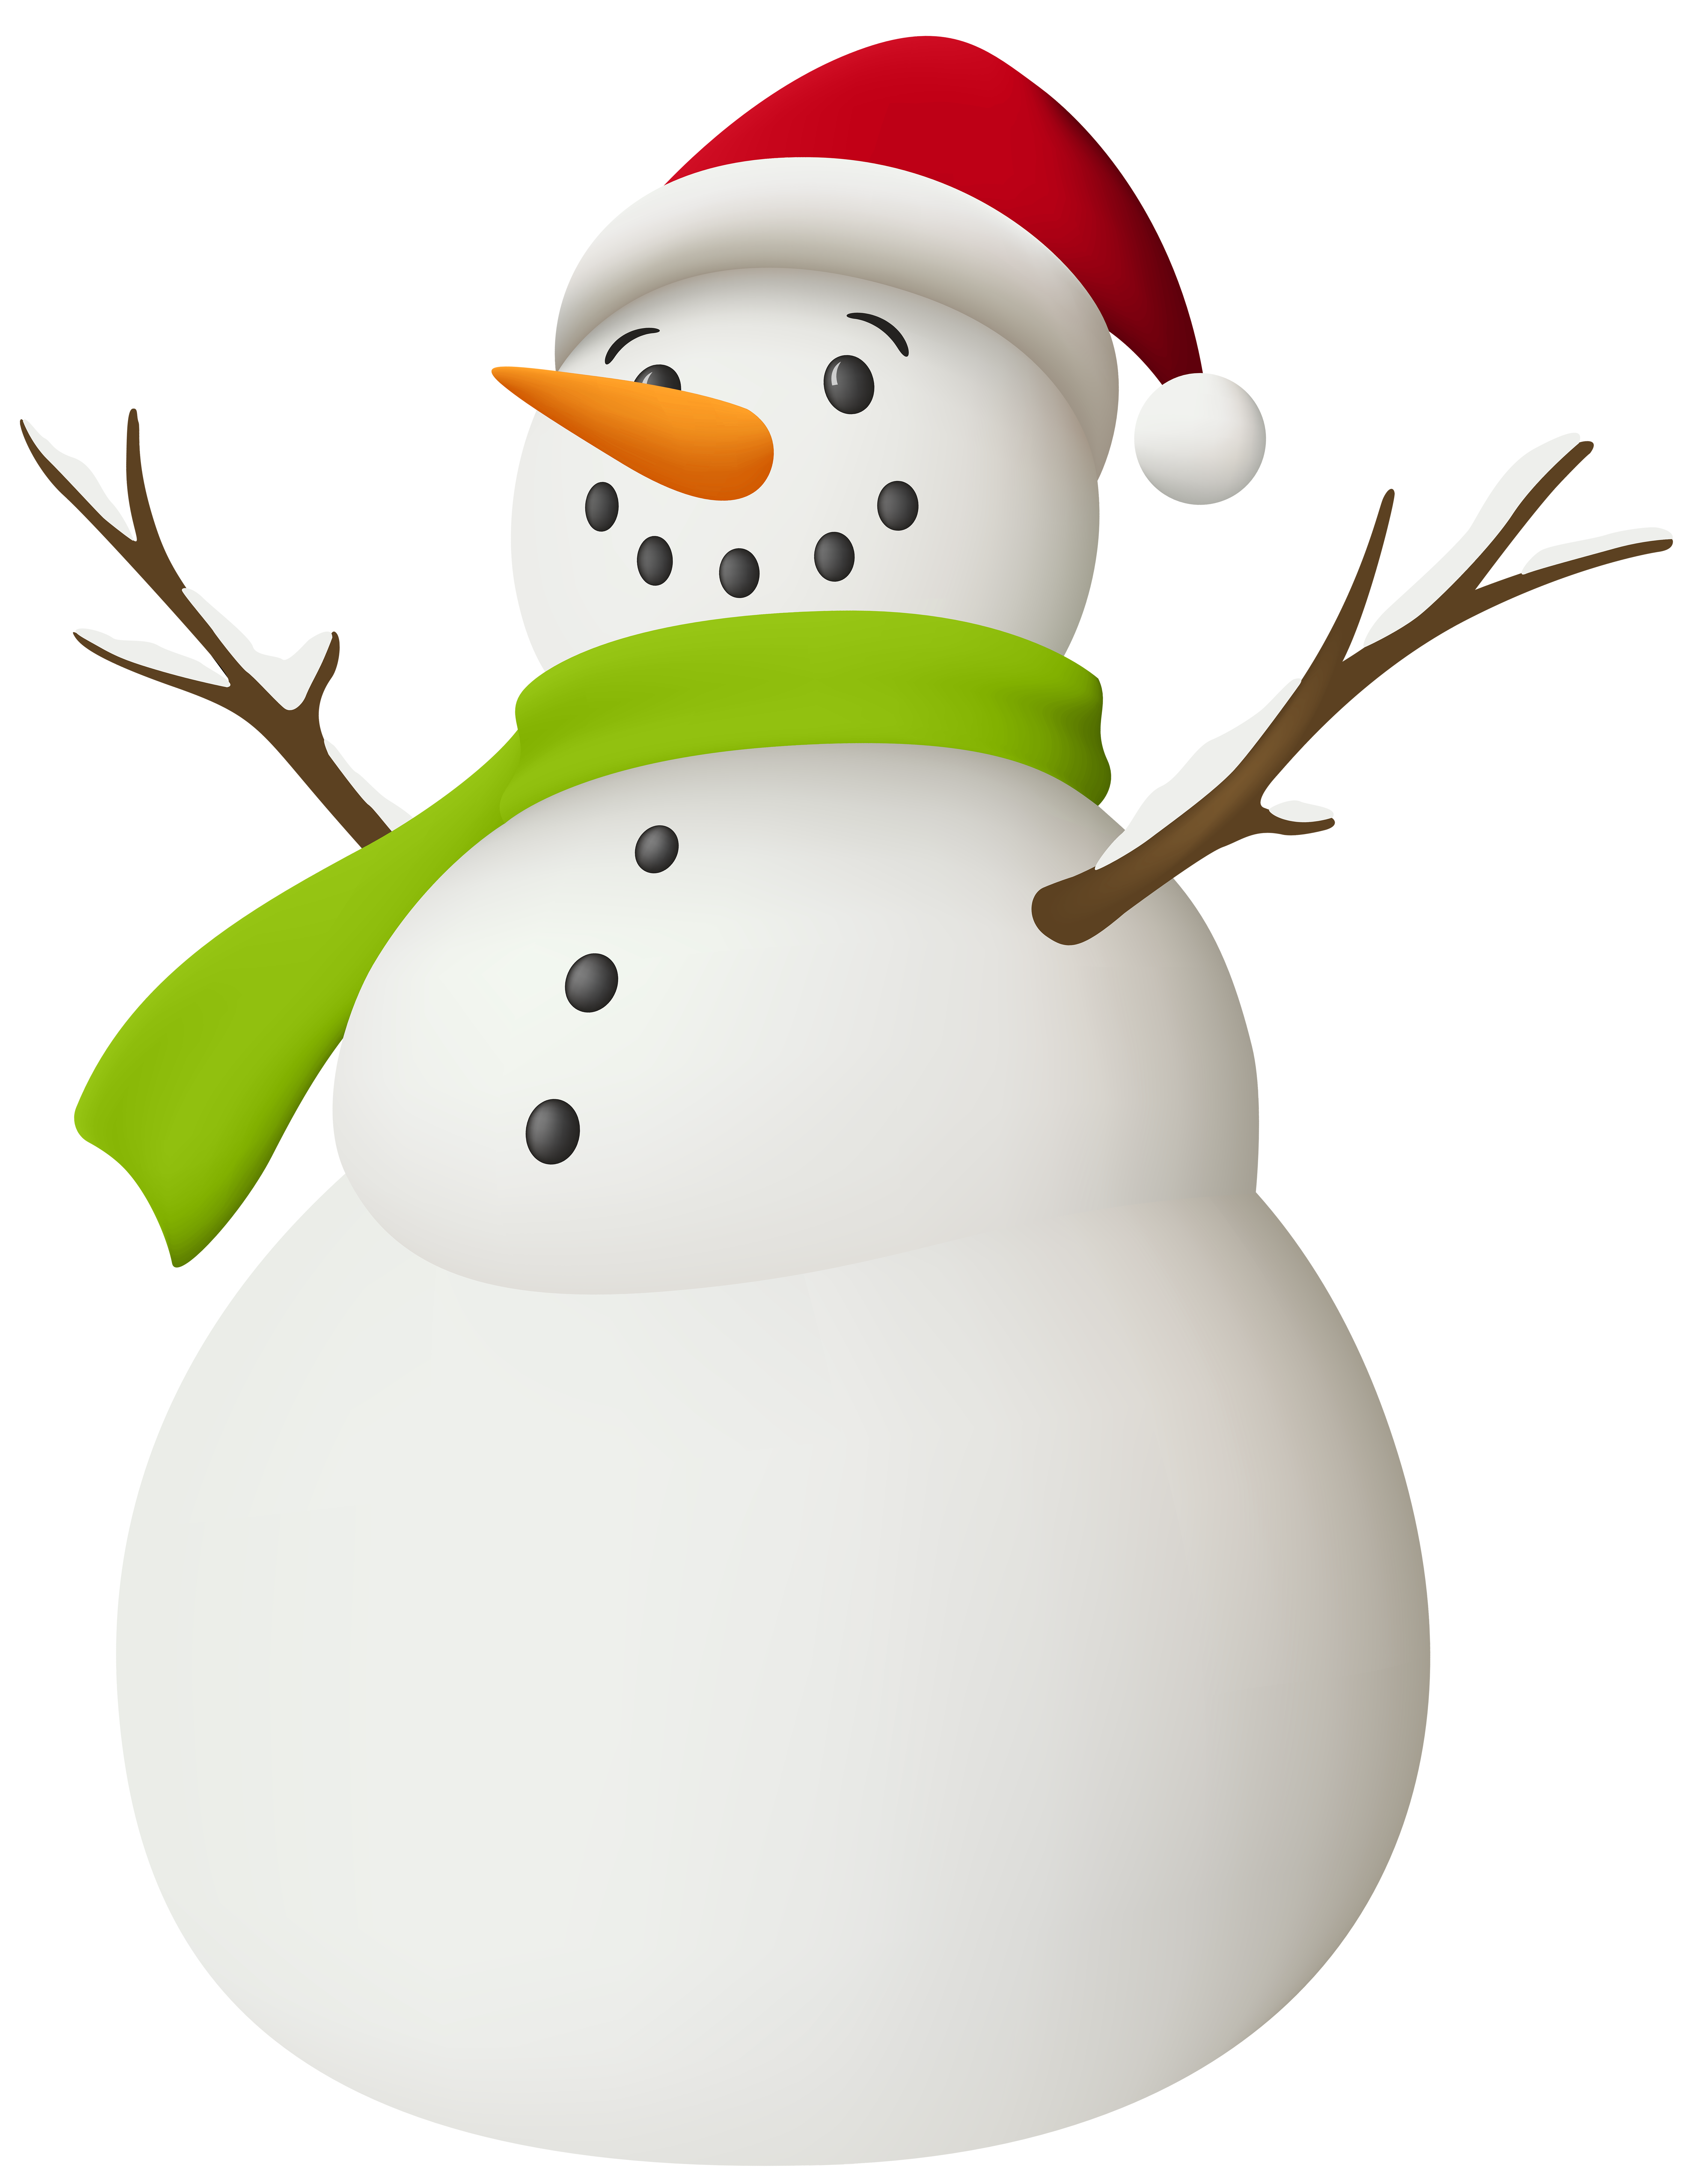 Snowman heart clipart image black and white library Snowman Transparent PNG Image | Gallery Yopriceville - High-Quality ... image black and white library